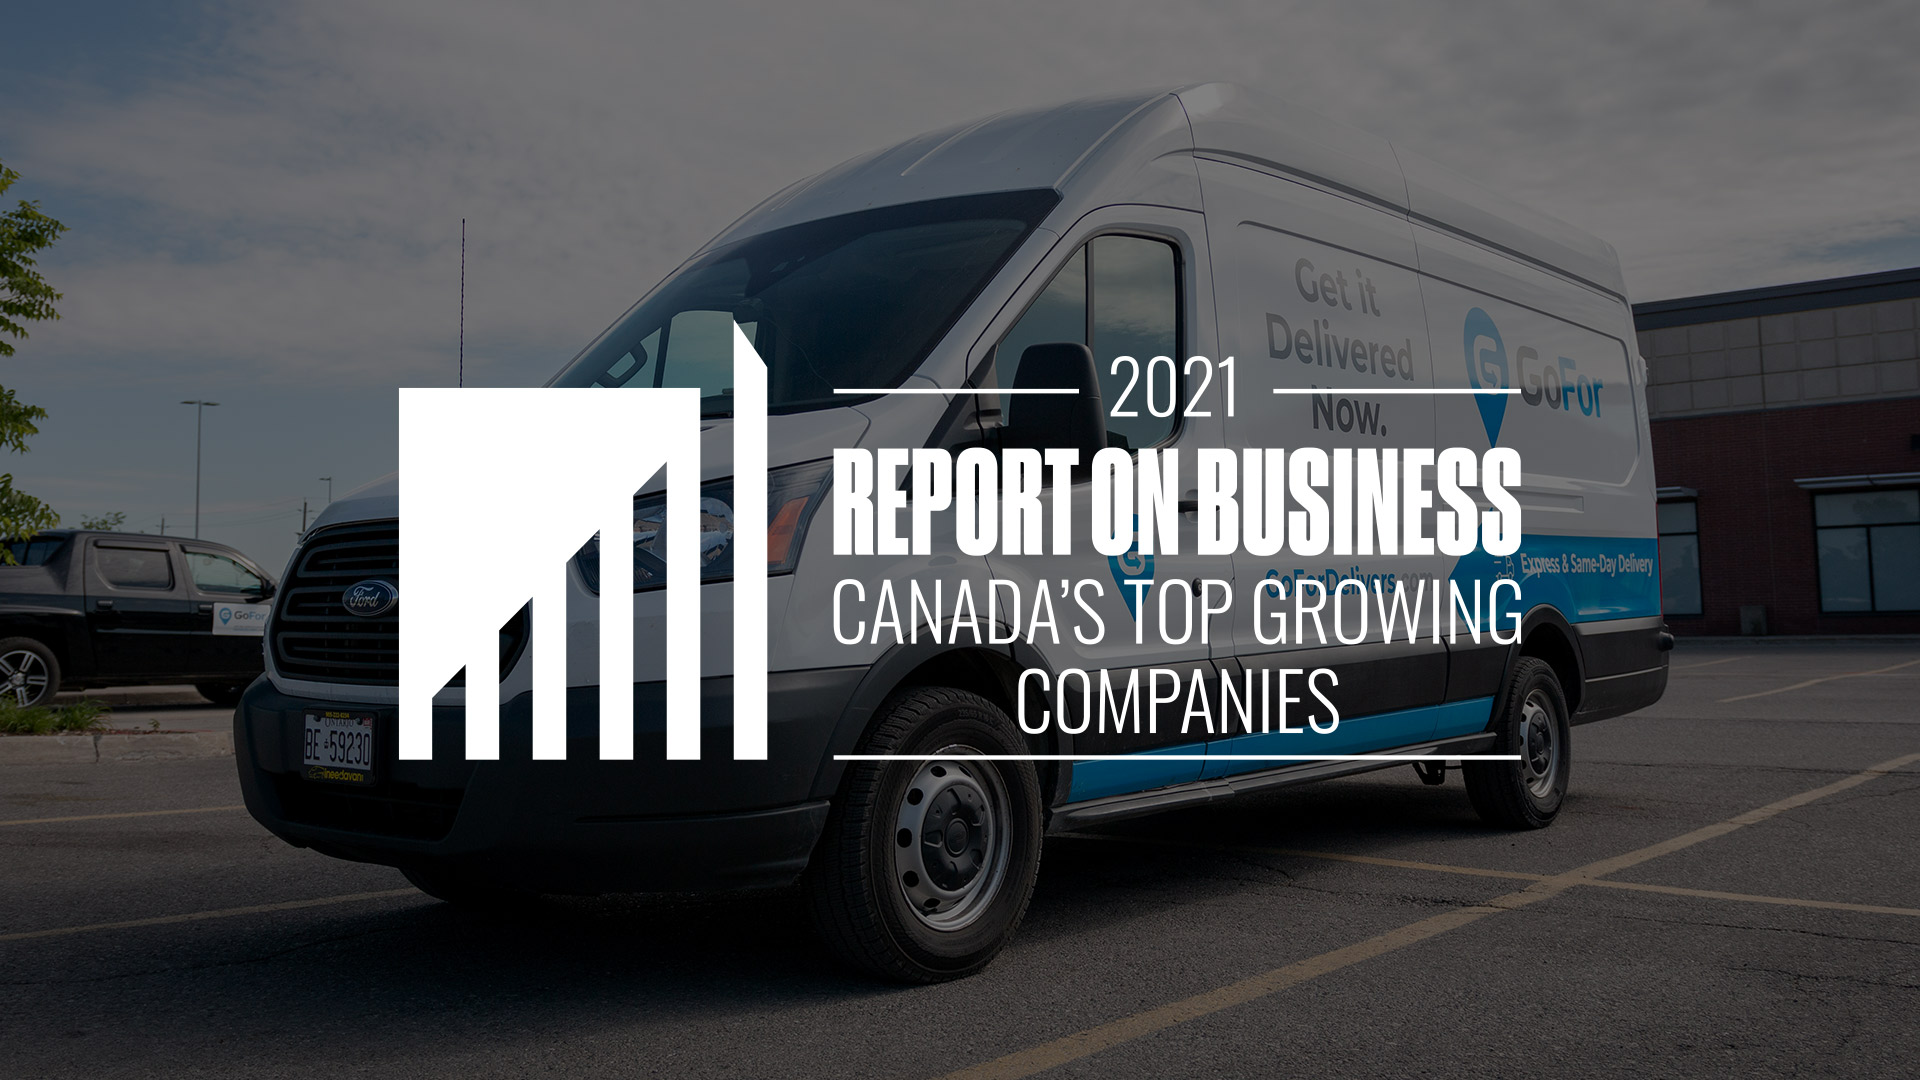 GoFor Ranked Among Top 10 of Canada's Fastest Growing Companies